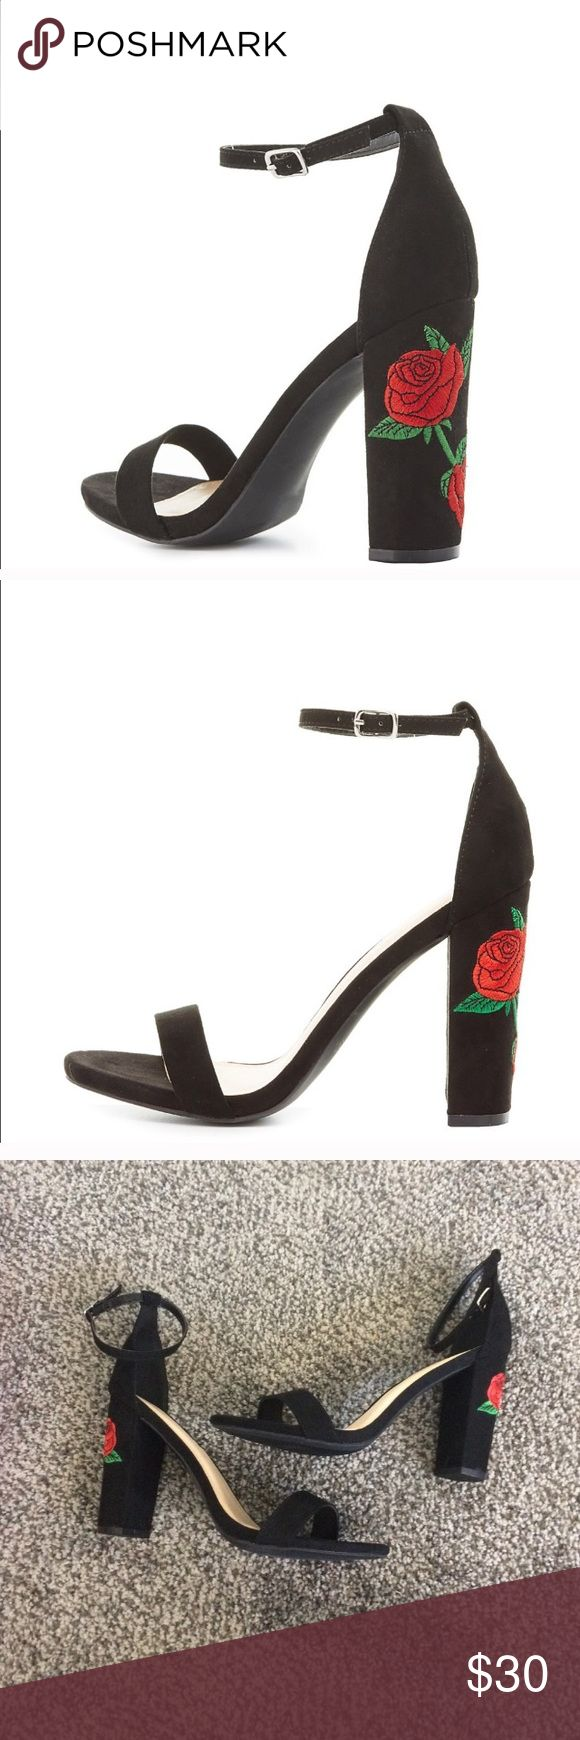 Charlotte Russe embroidered block heel New with box! Charlotte Russe Shoes Heels